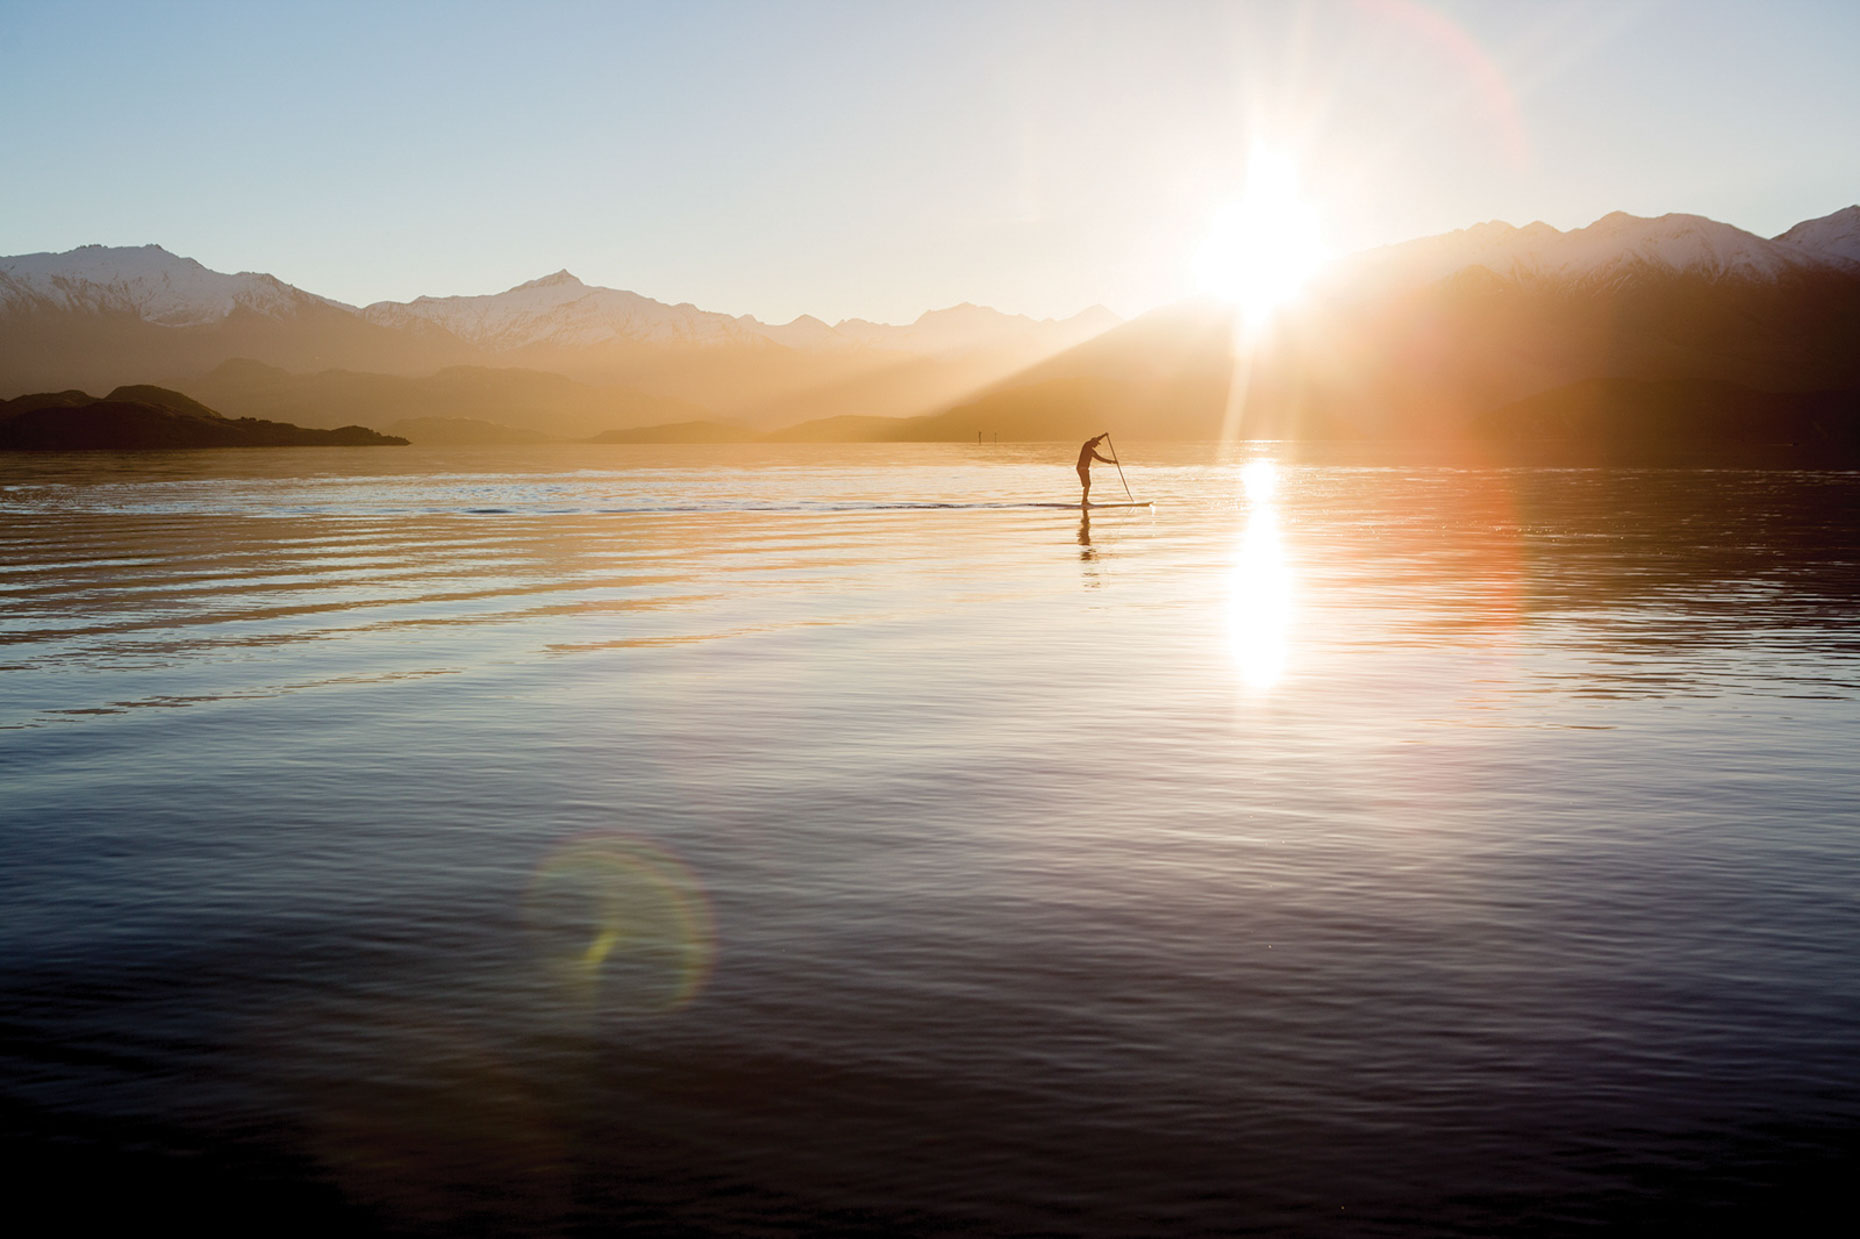 Stand up paddle boarding at sunset, Lake Wanaka.